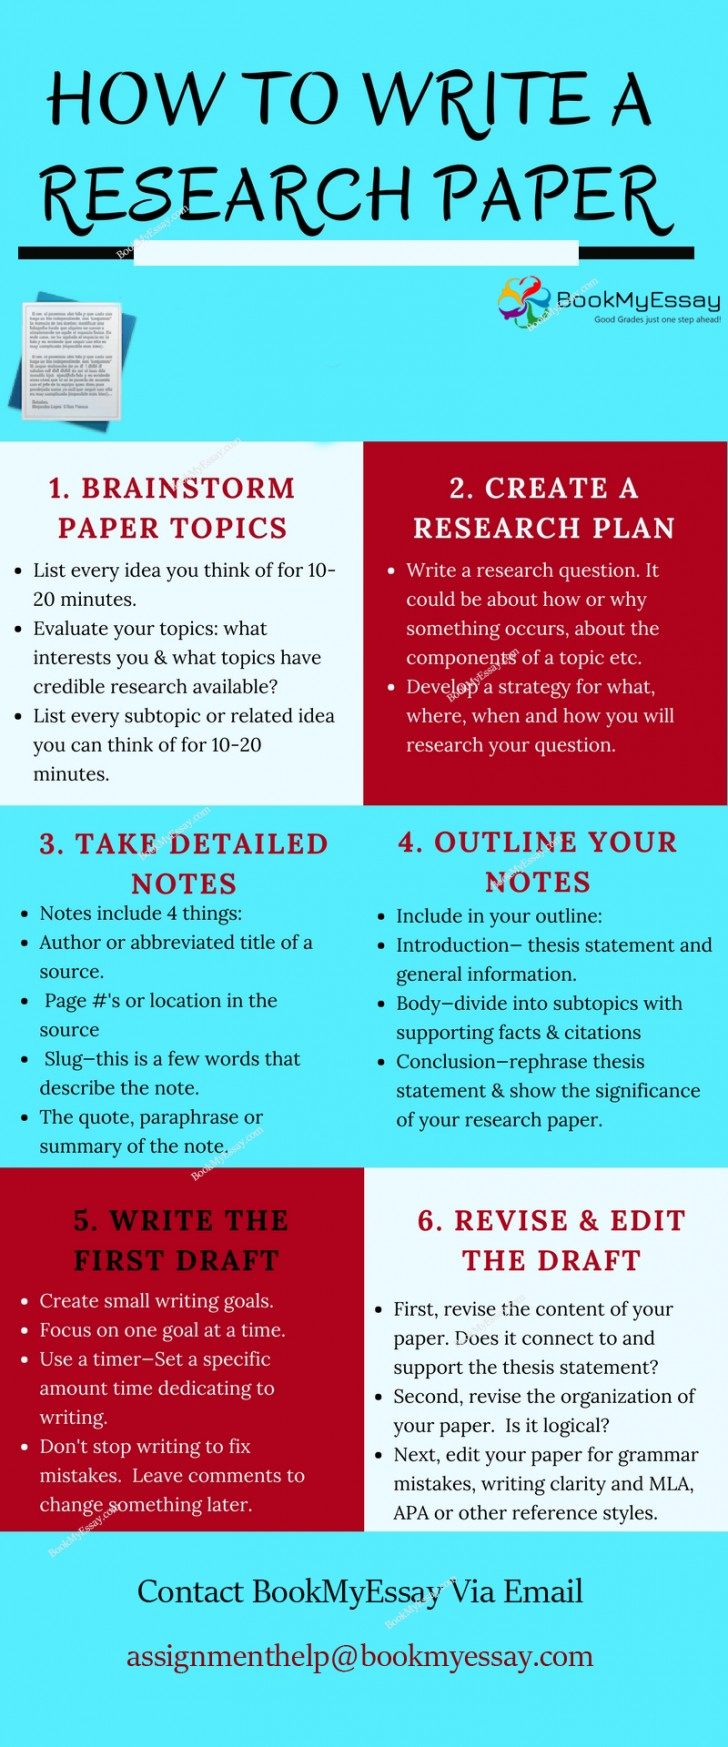 003 Research Paper Writing Service Dreaded Services In India Online Chennai 728